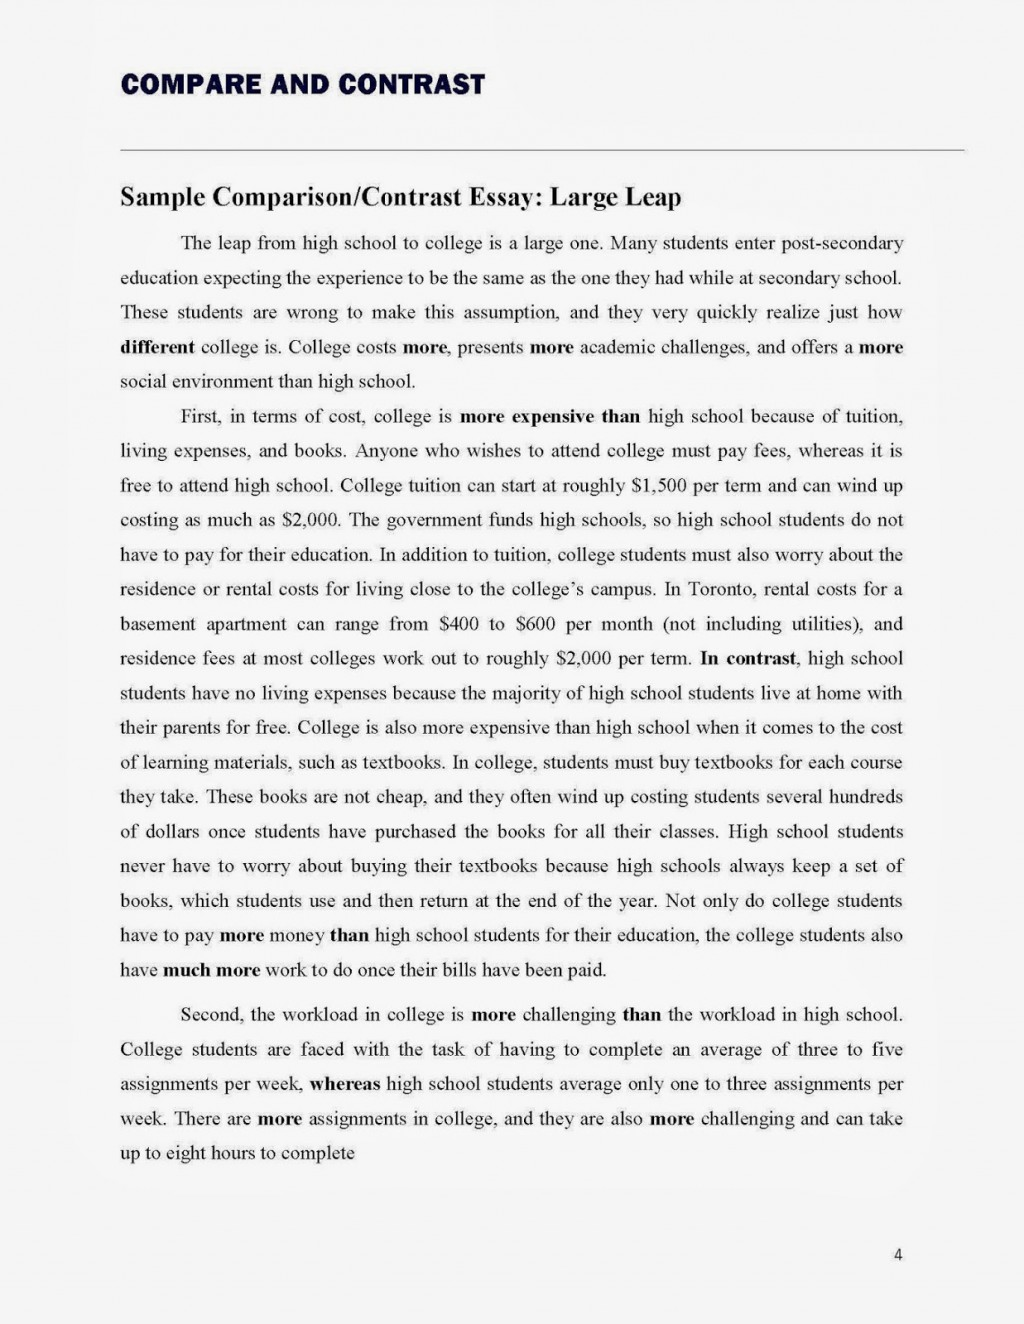 014 Compare20and20contrast20essay Page 4 Essay Example Funny Compare And Contrast Surprising Topics For College Large